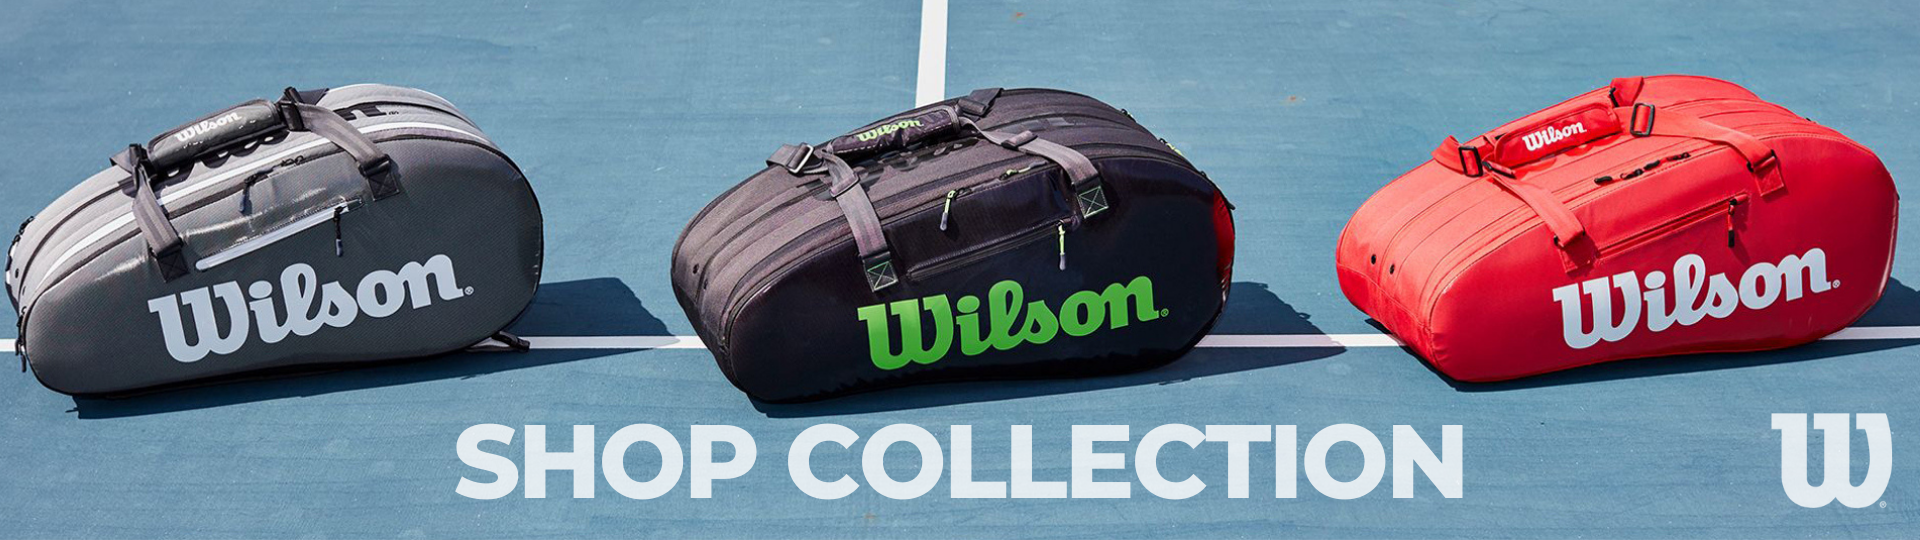 2021-wilson-racquet-bag-collection-.png